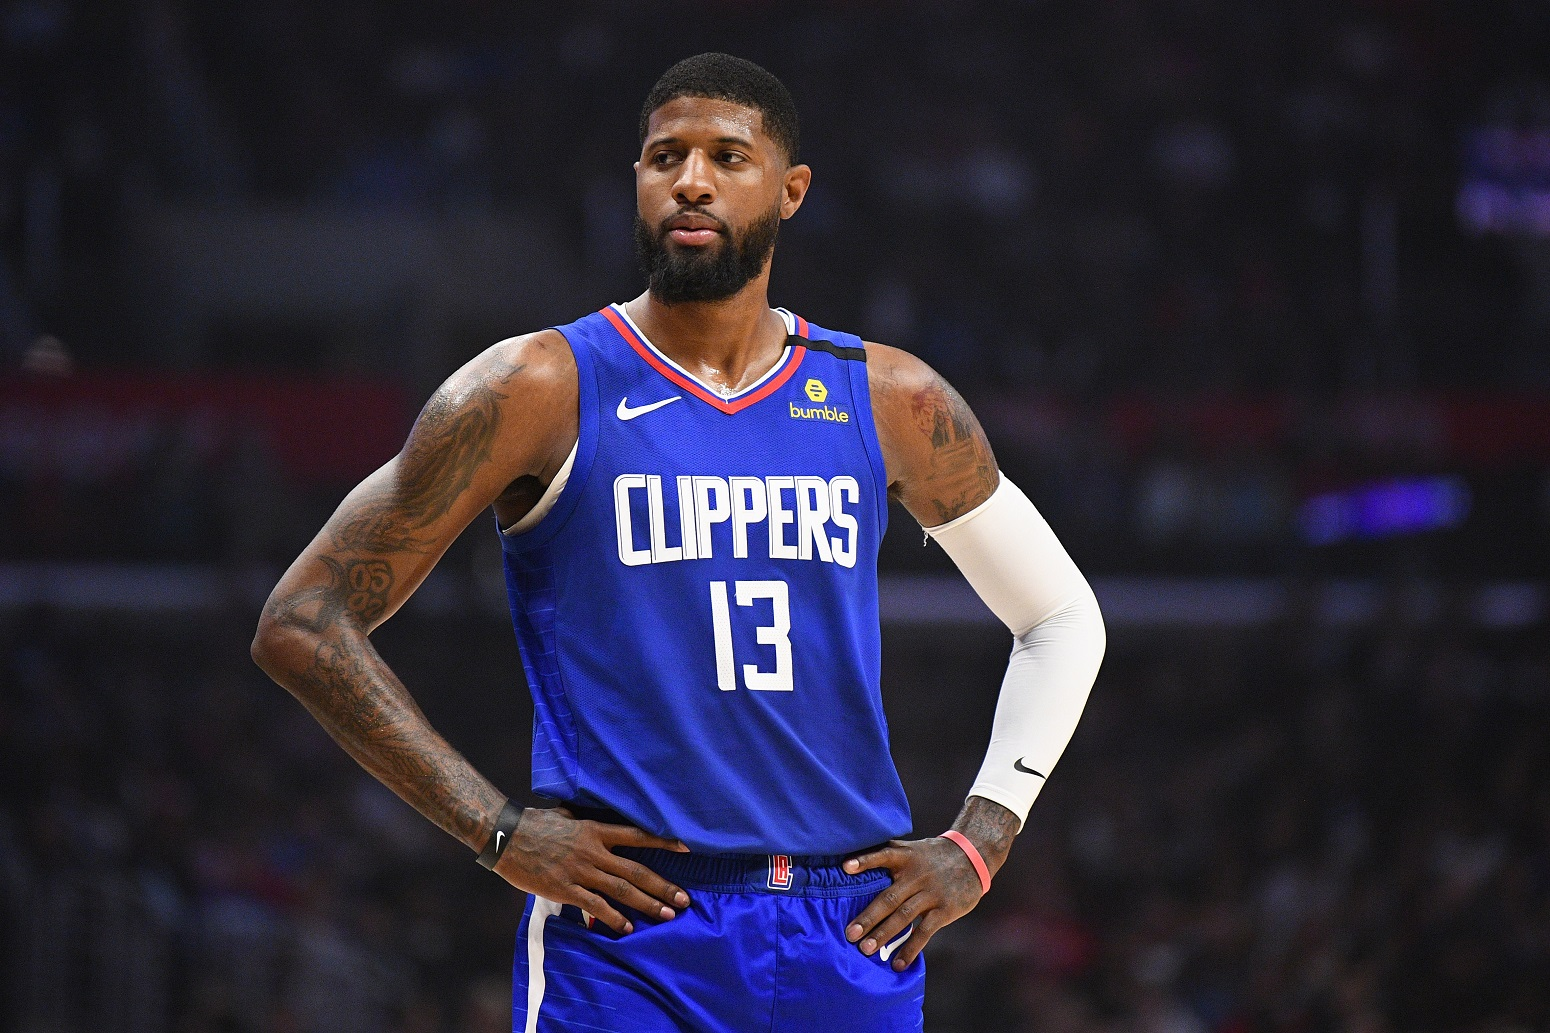 Paul George Clippers contradicts playoff collapse